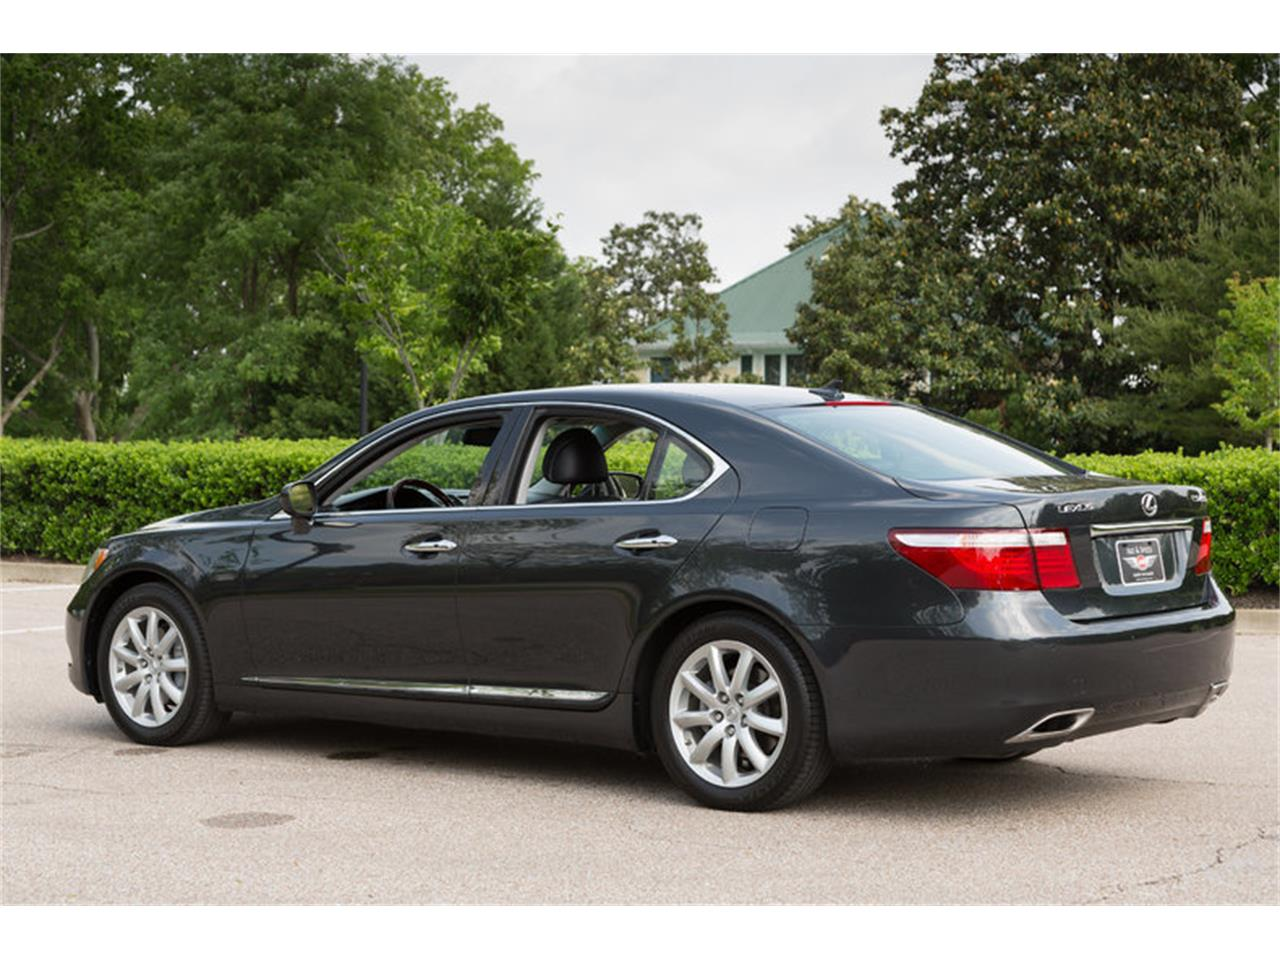 Large Picture of 2008 Lexus LS460 - $19,900.00 Offered by Art & Speed - L6Q7